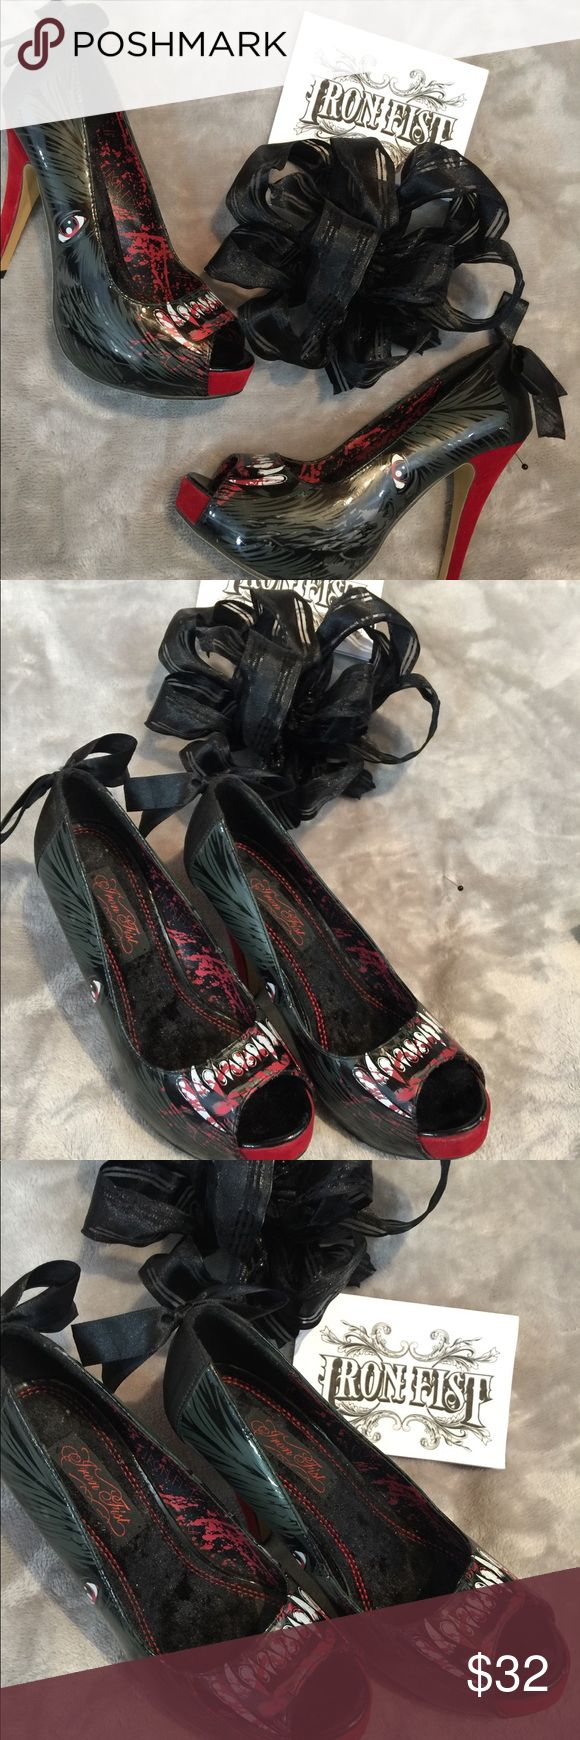 Awesome Iron Fist Heels Slightly worn excellent used condition. About a four inch heel.  Black and red with bloody teeth. And black bows on the back.  Size 8. No pets or smoke closet Iron Fist Shoes Heels